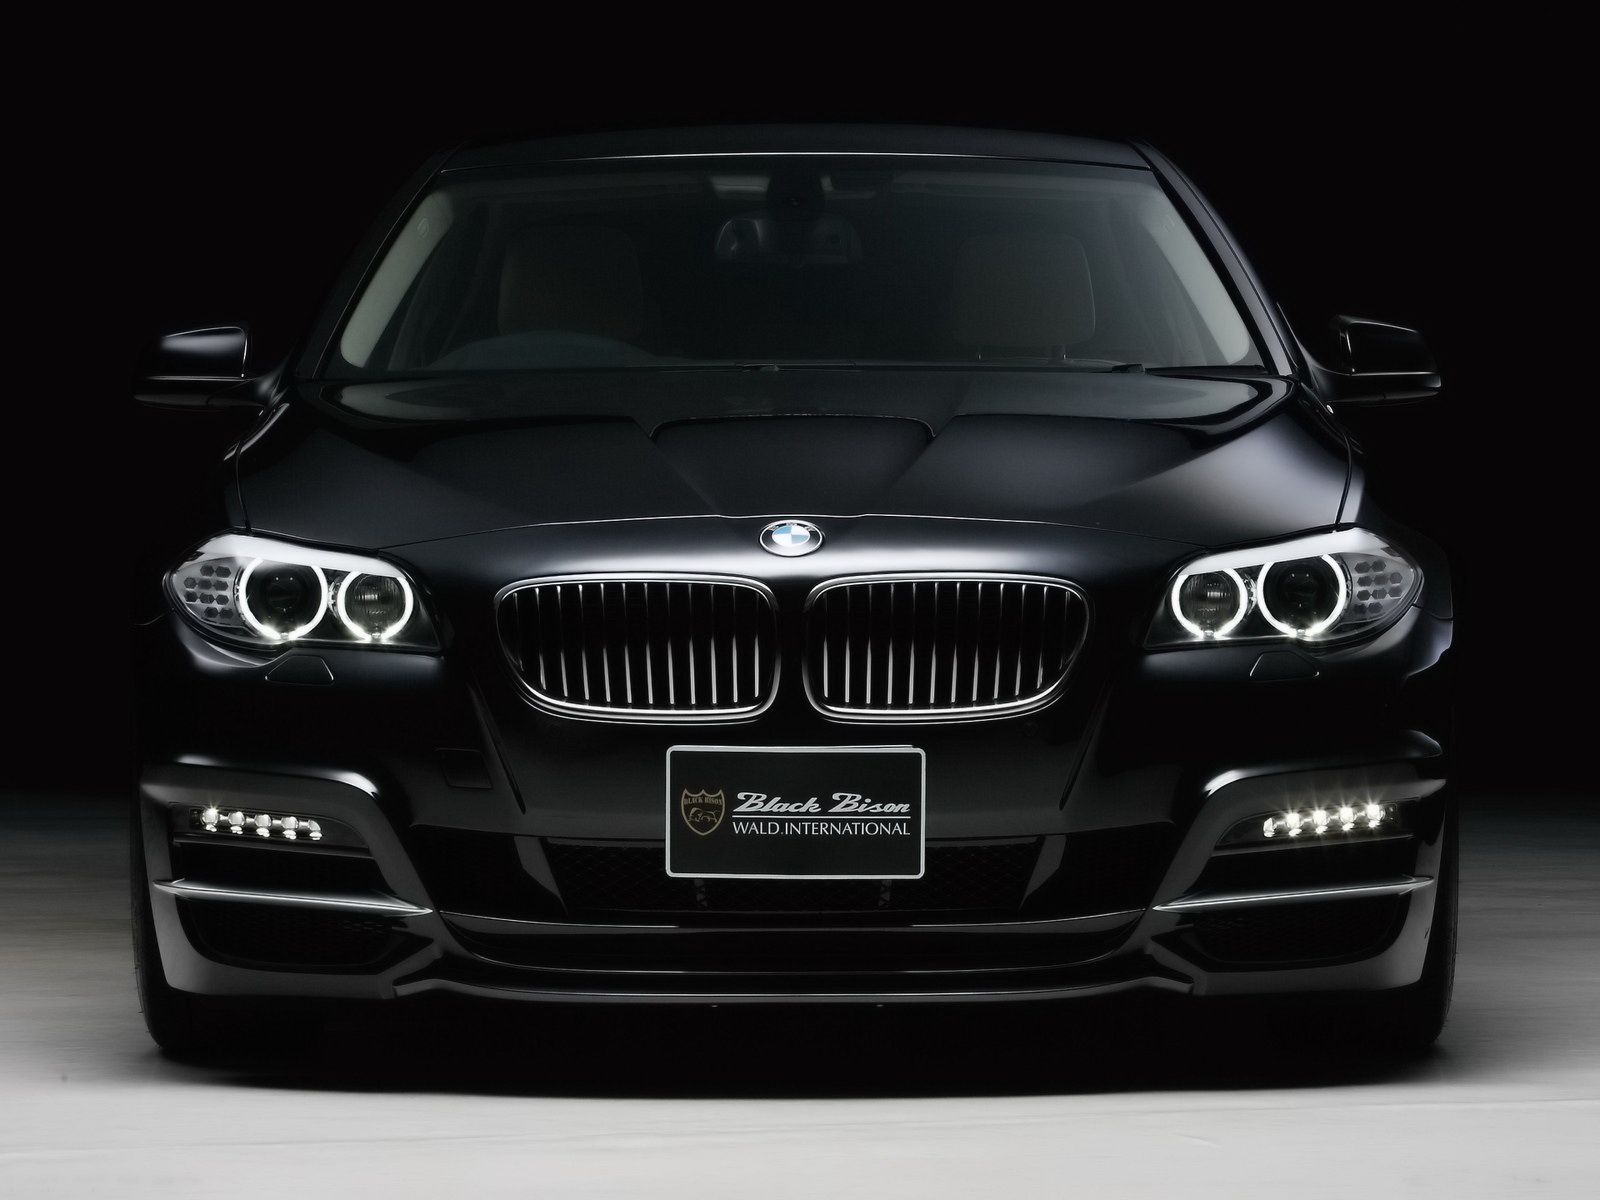 Bmw To Launch 2014 Bmw 5 Series Facelift In India Bmw Car